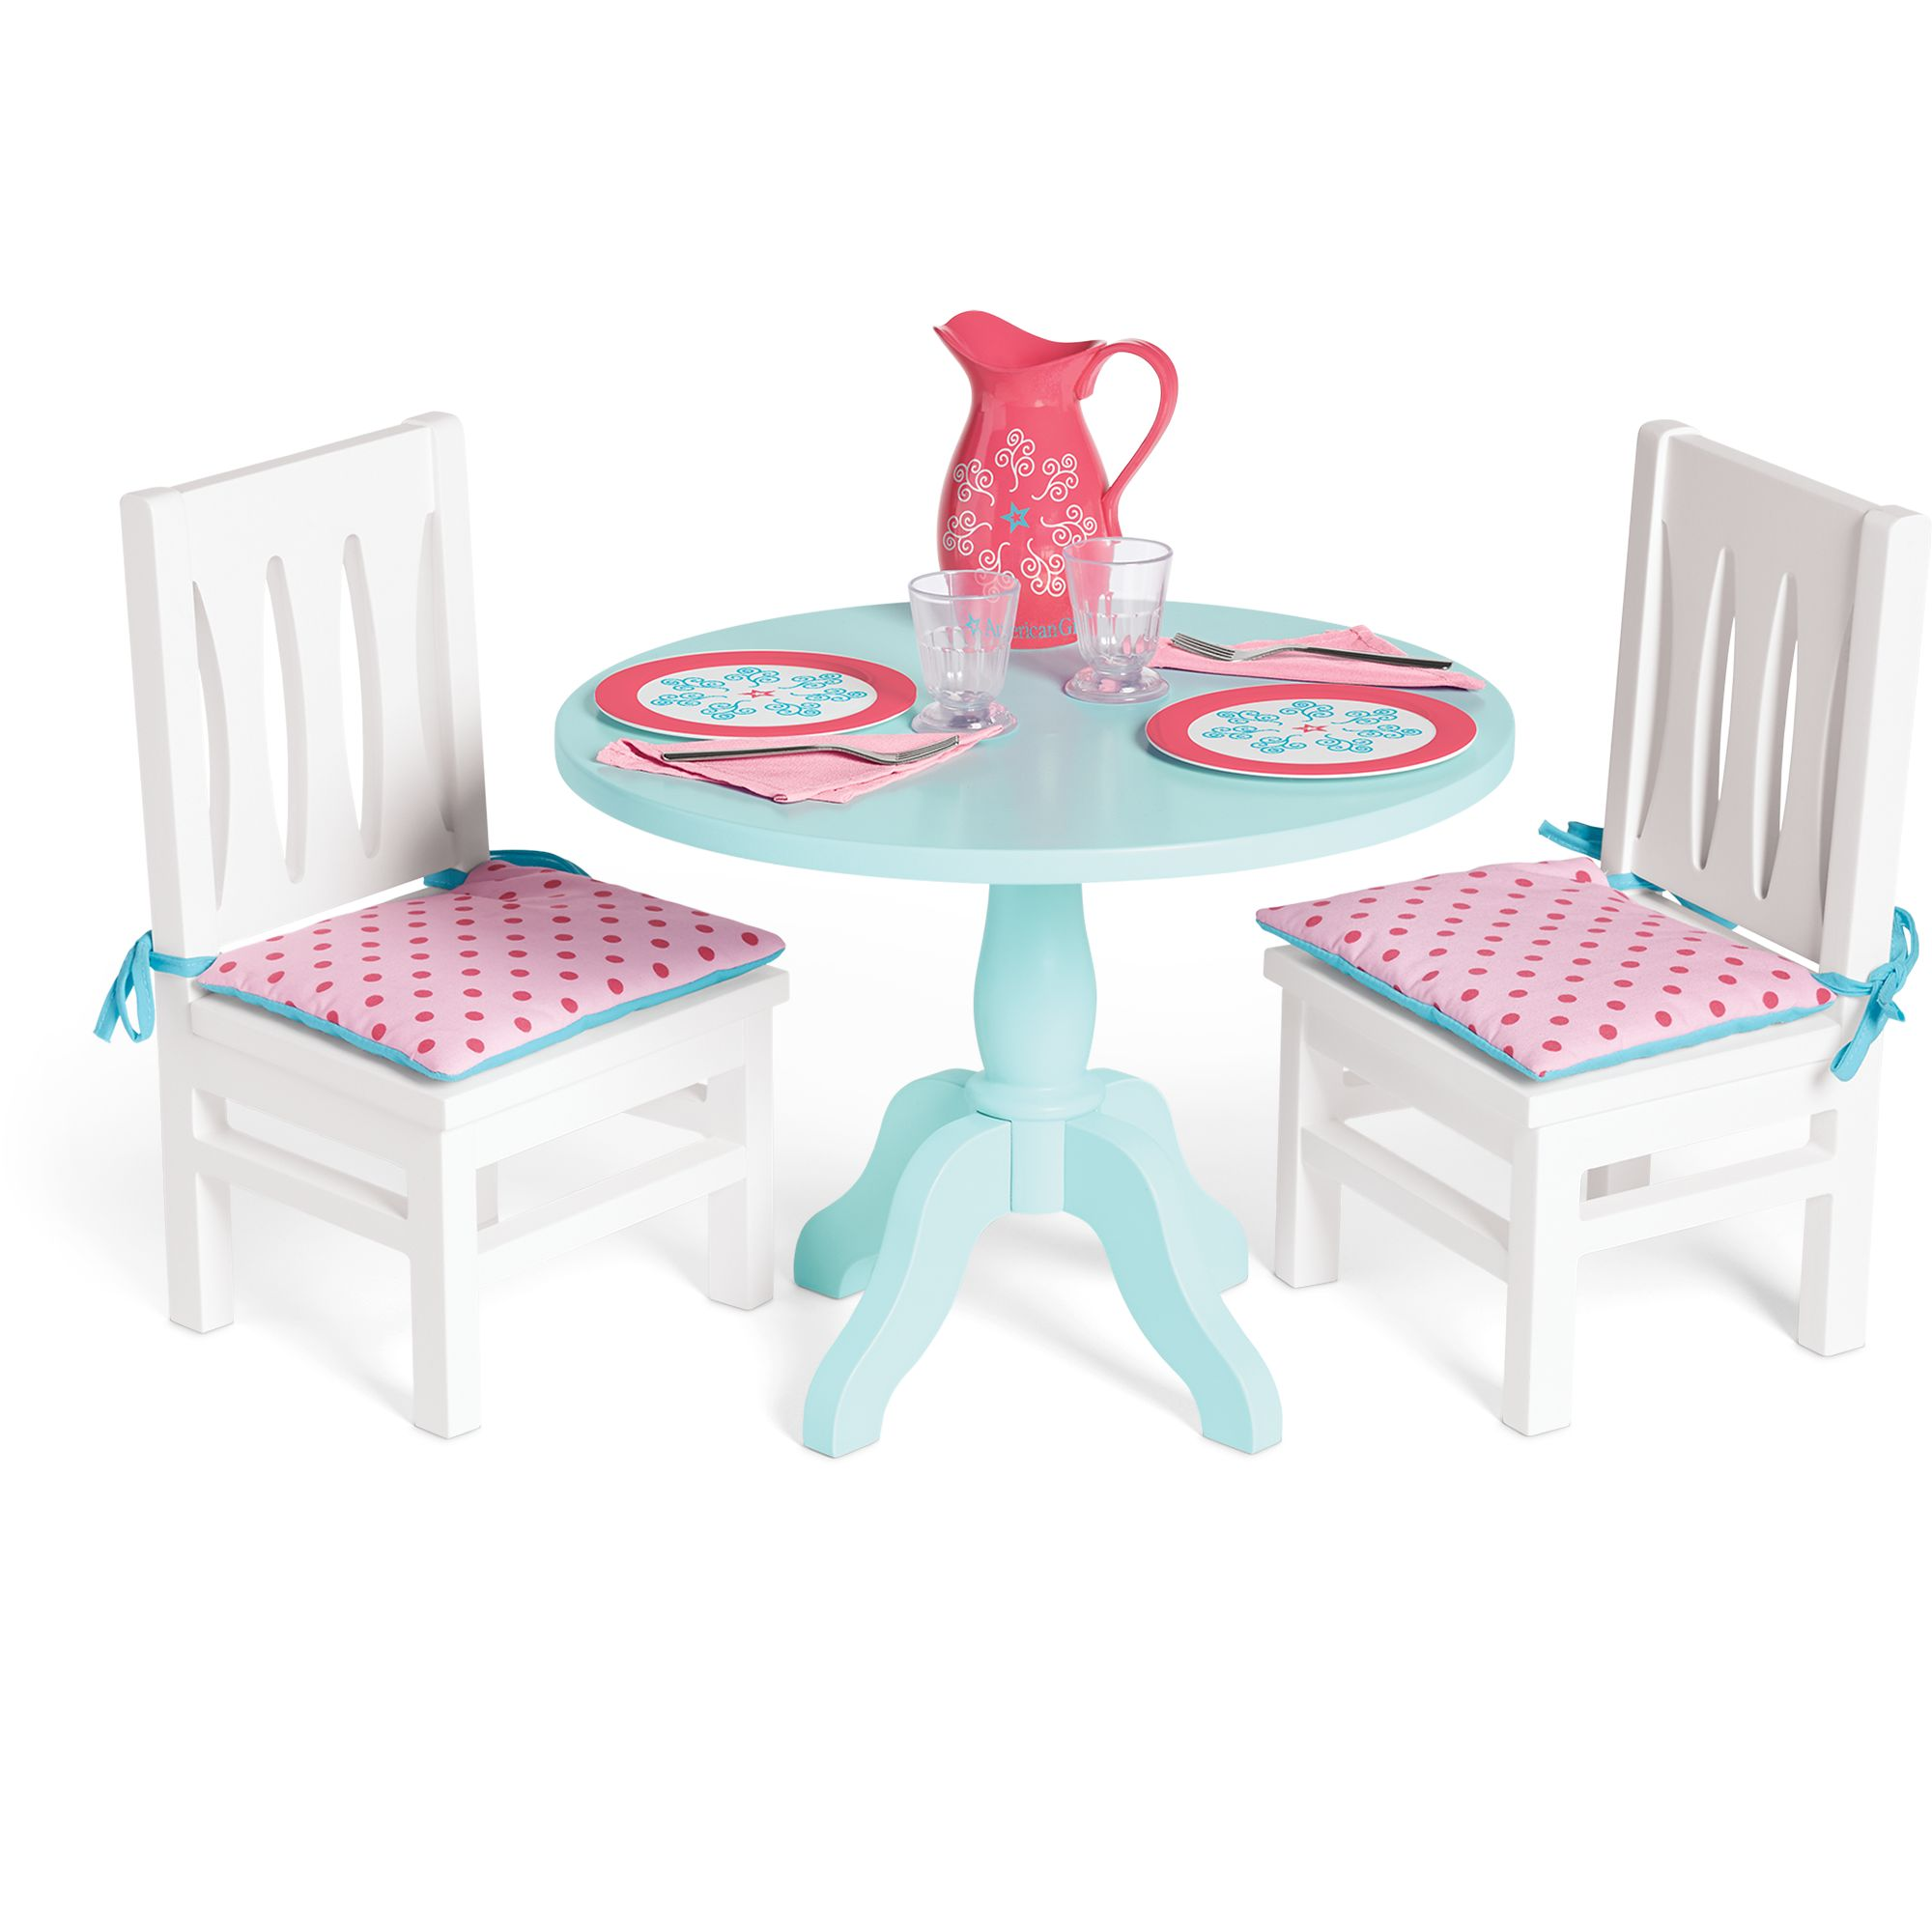 Table Chairs Set For Dolls American Girl